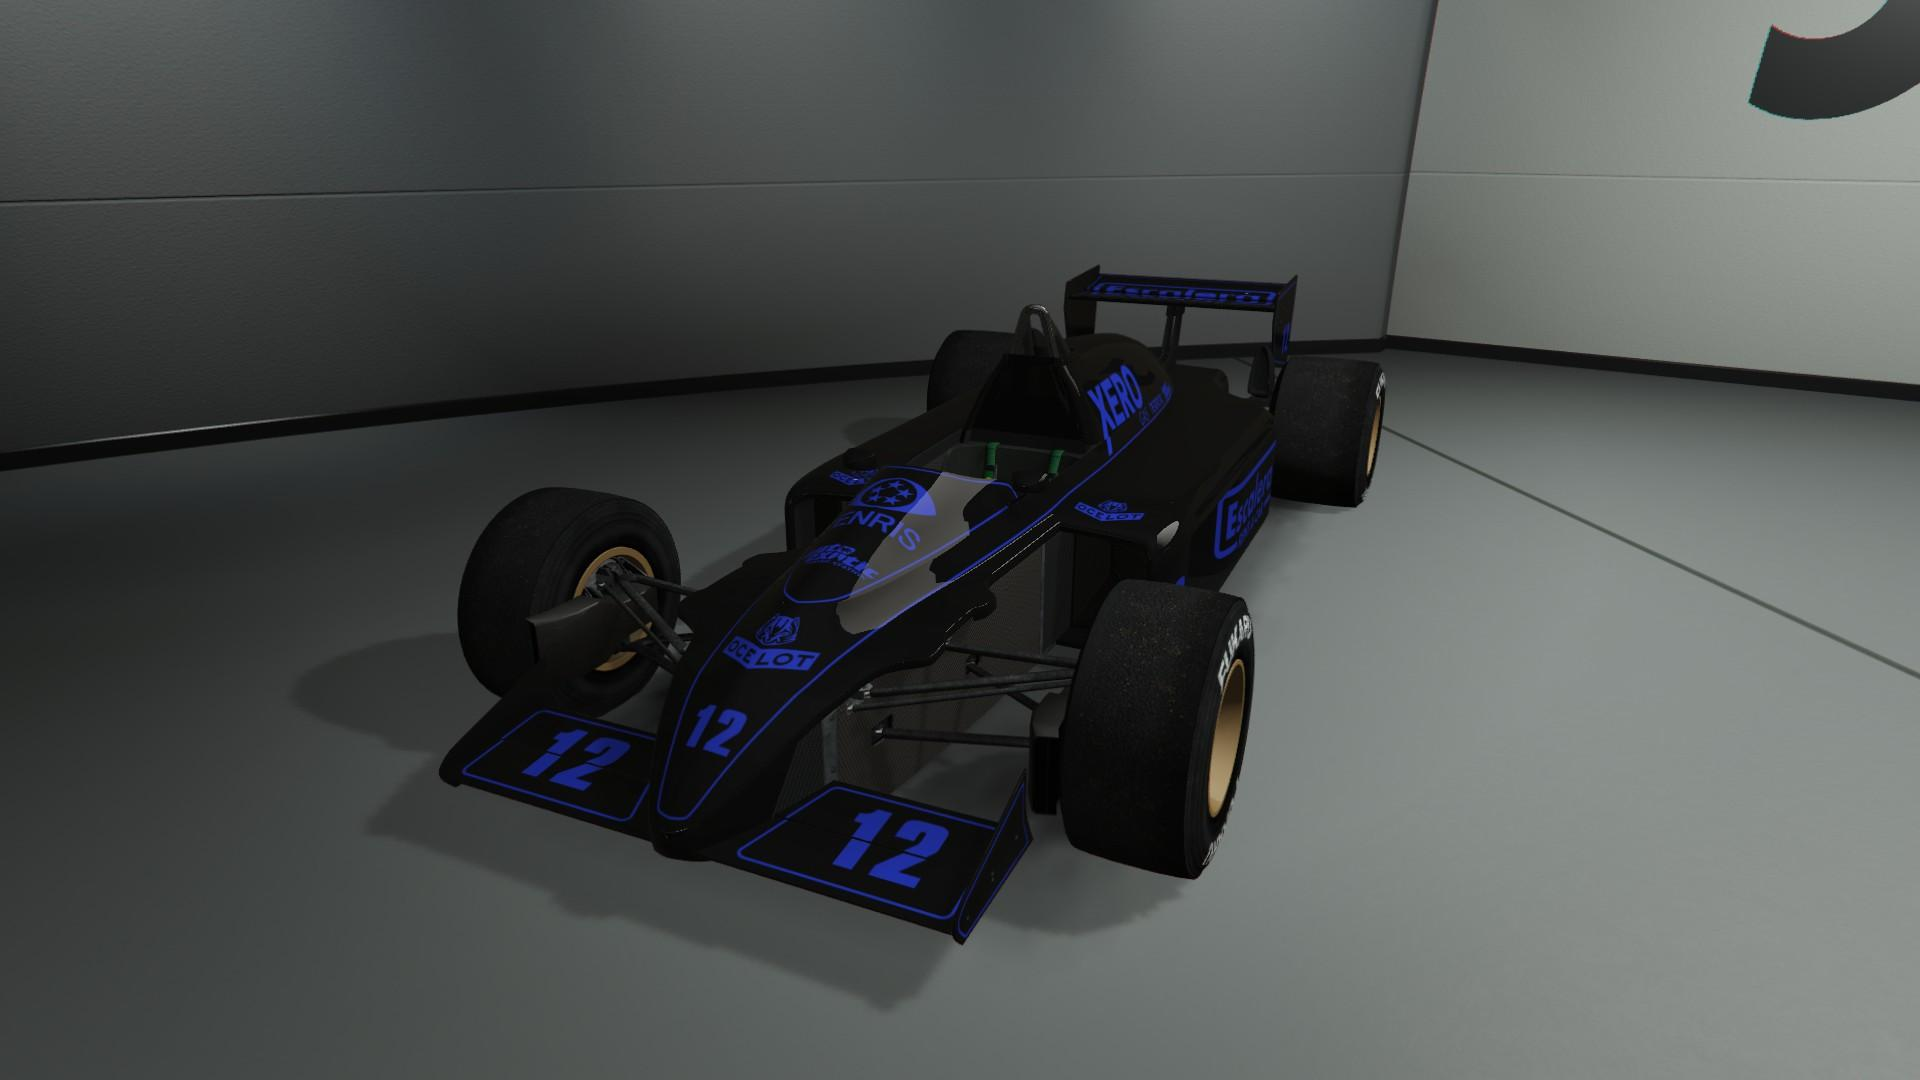 Custom R88 (Formula 1 Car) by GaludaoK2